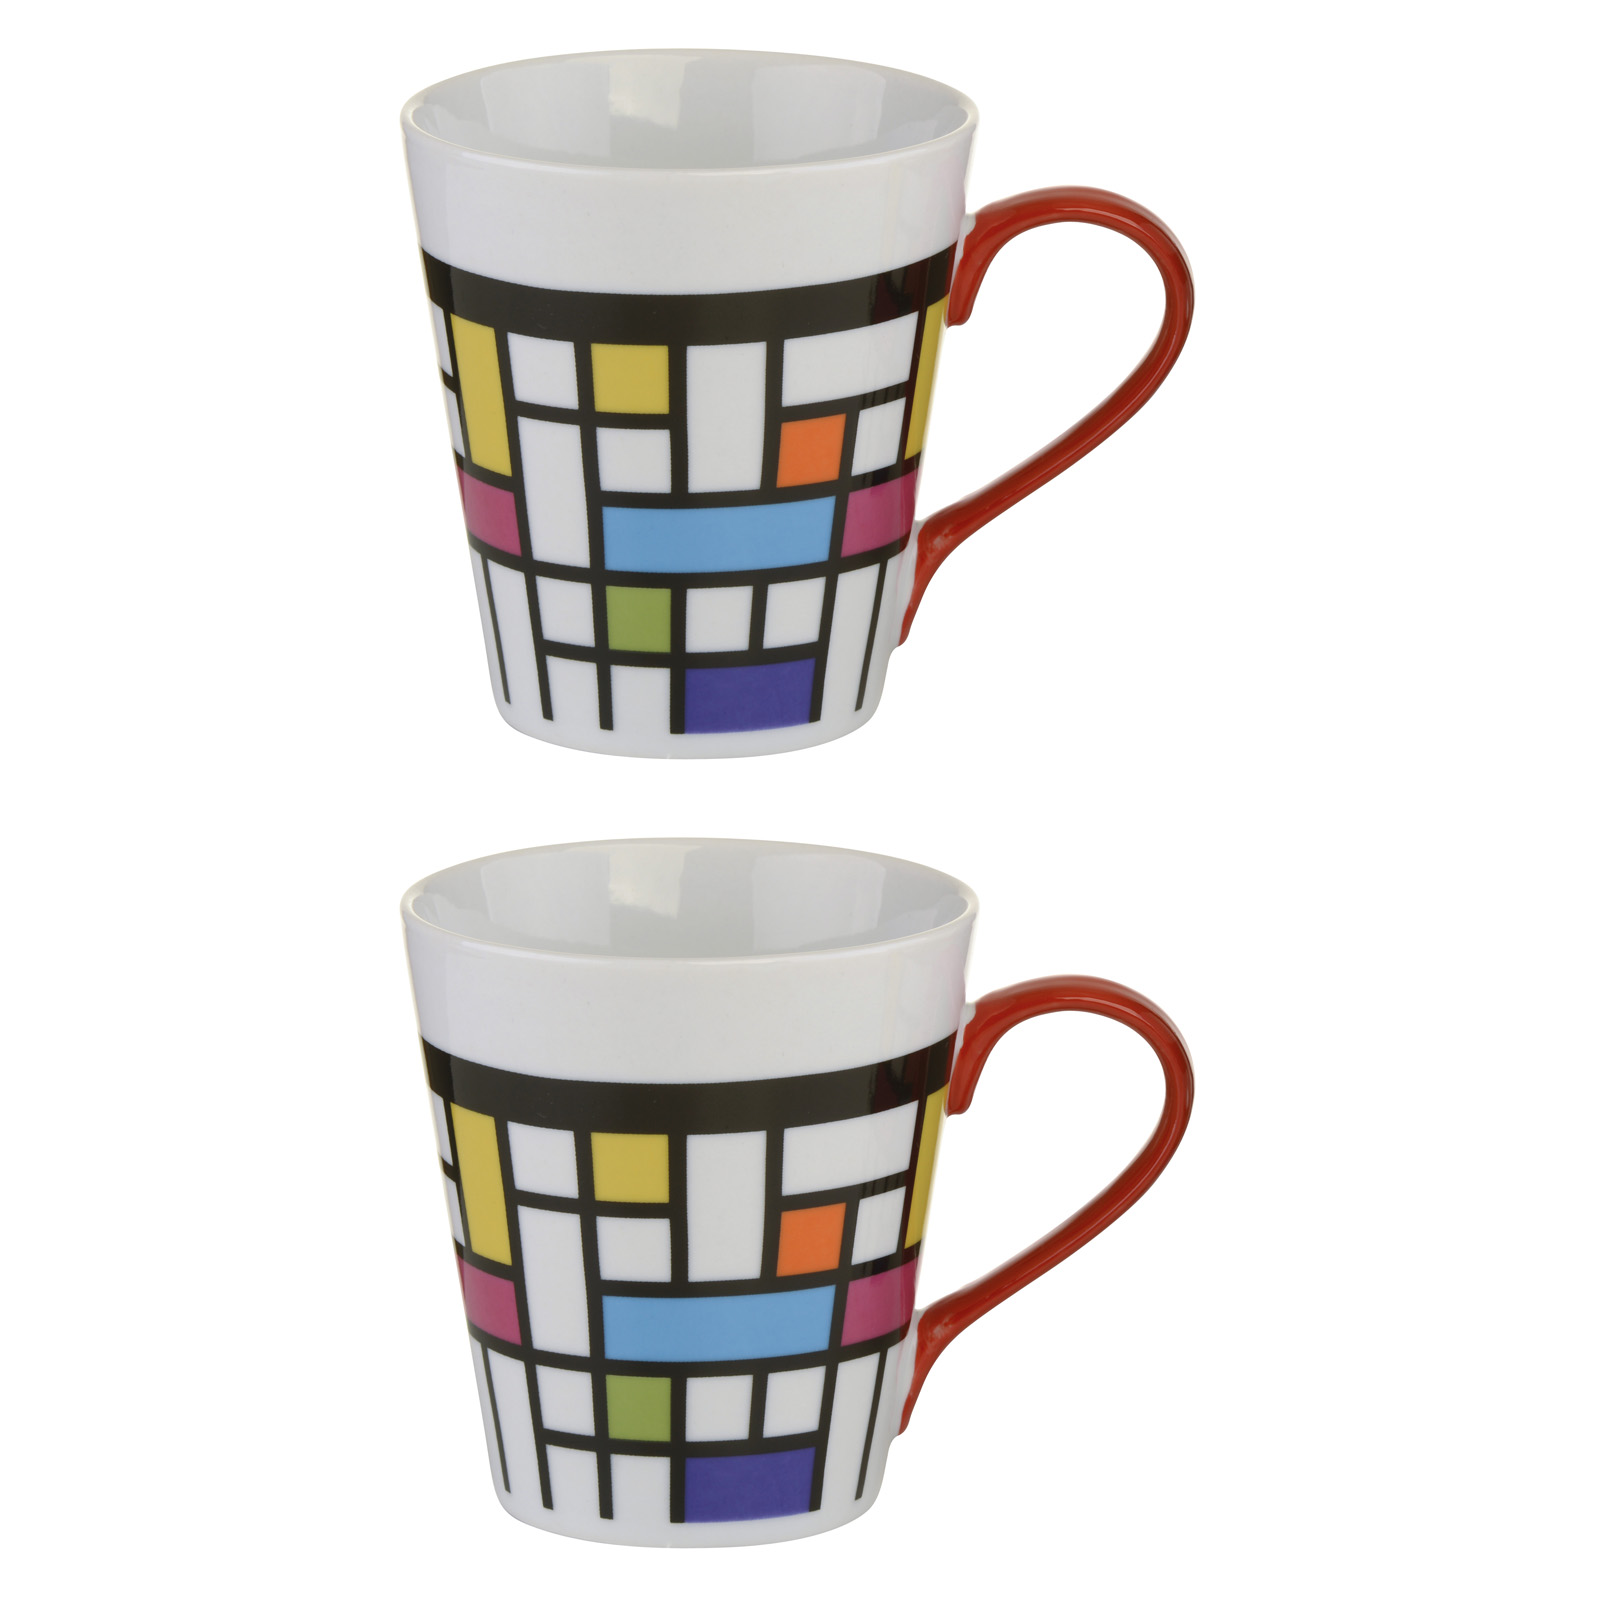 Set of 2 Mosaic Mugs by BIA